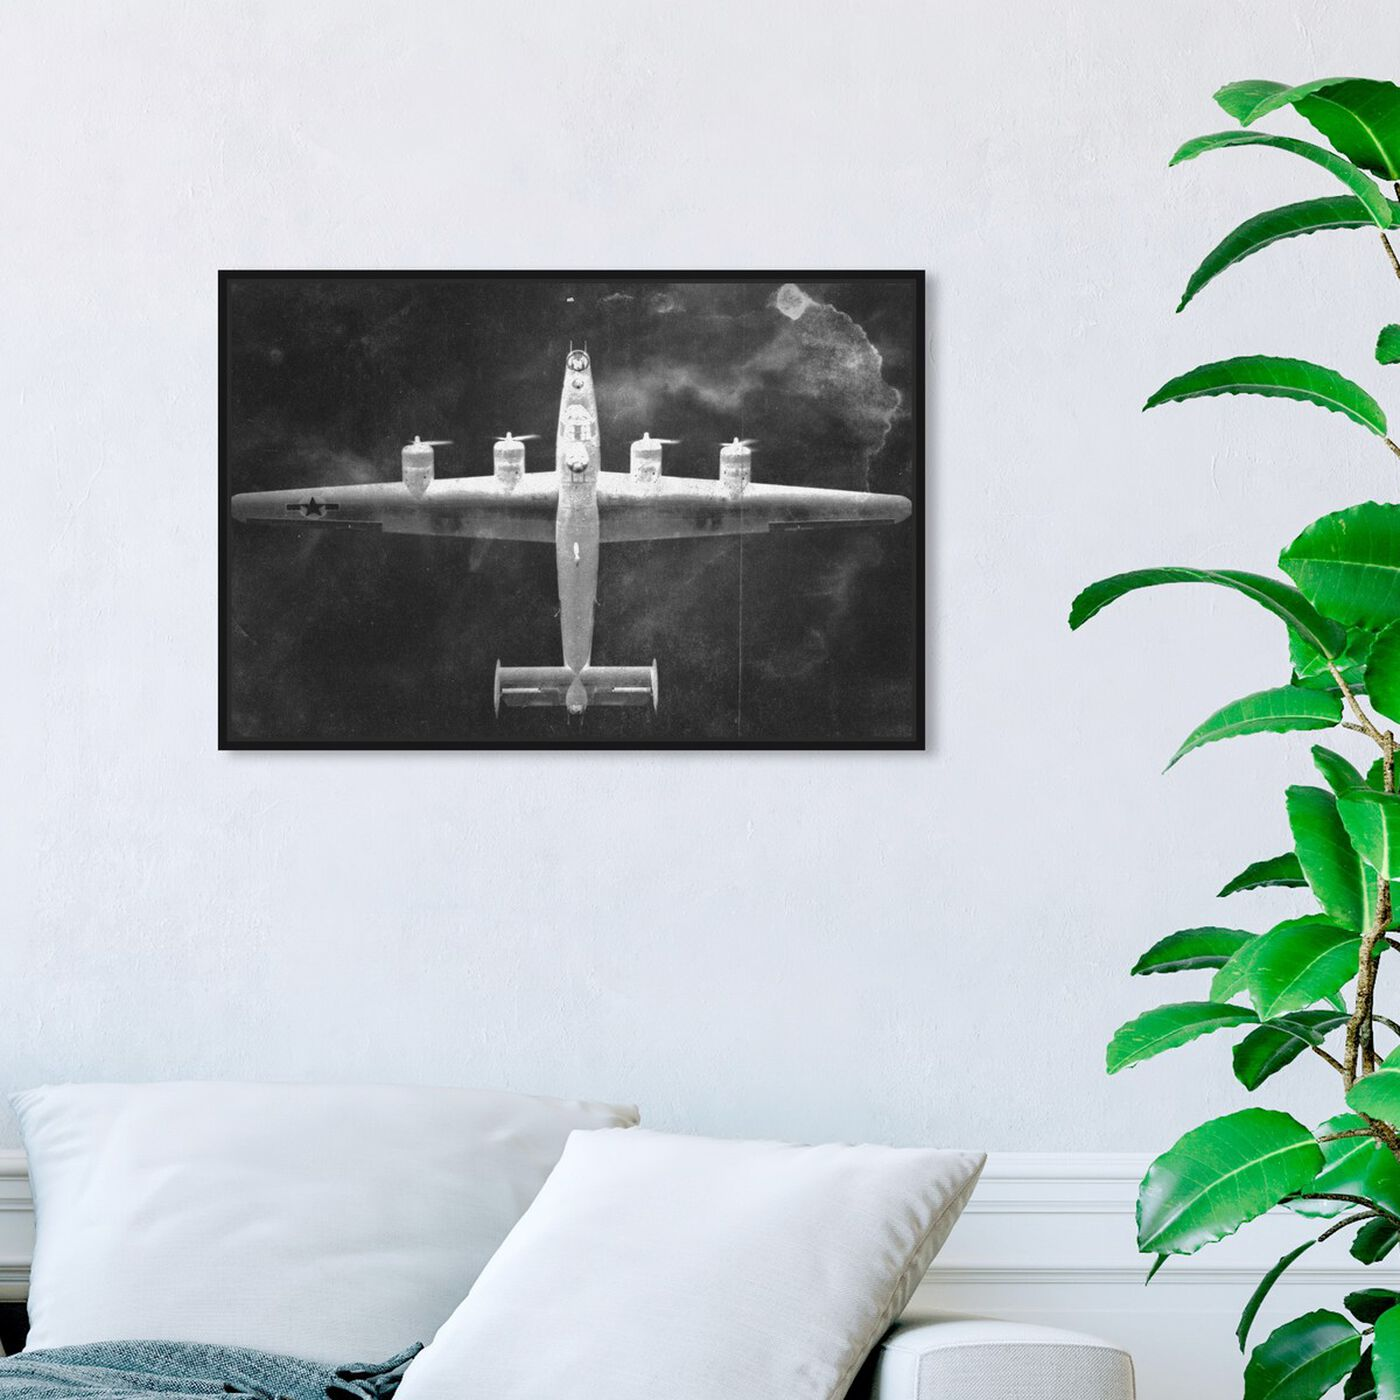 Hanging view of Aircraft Inverted featuring transportation and airplanes art.